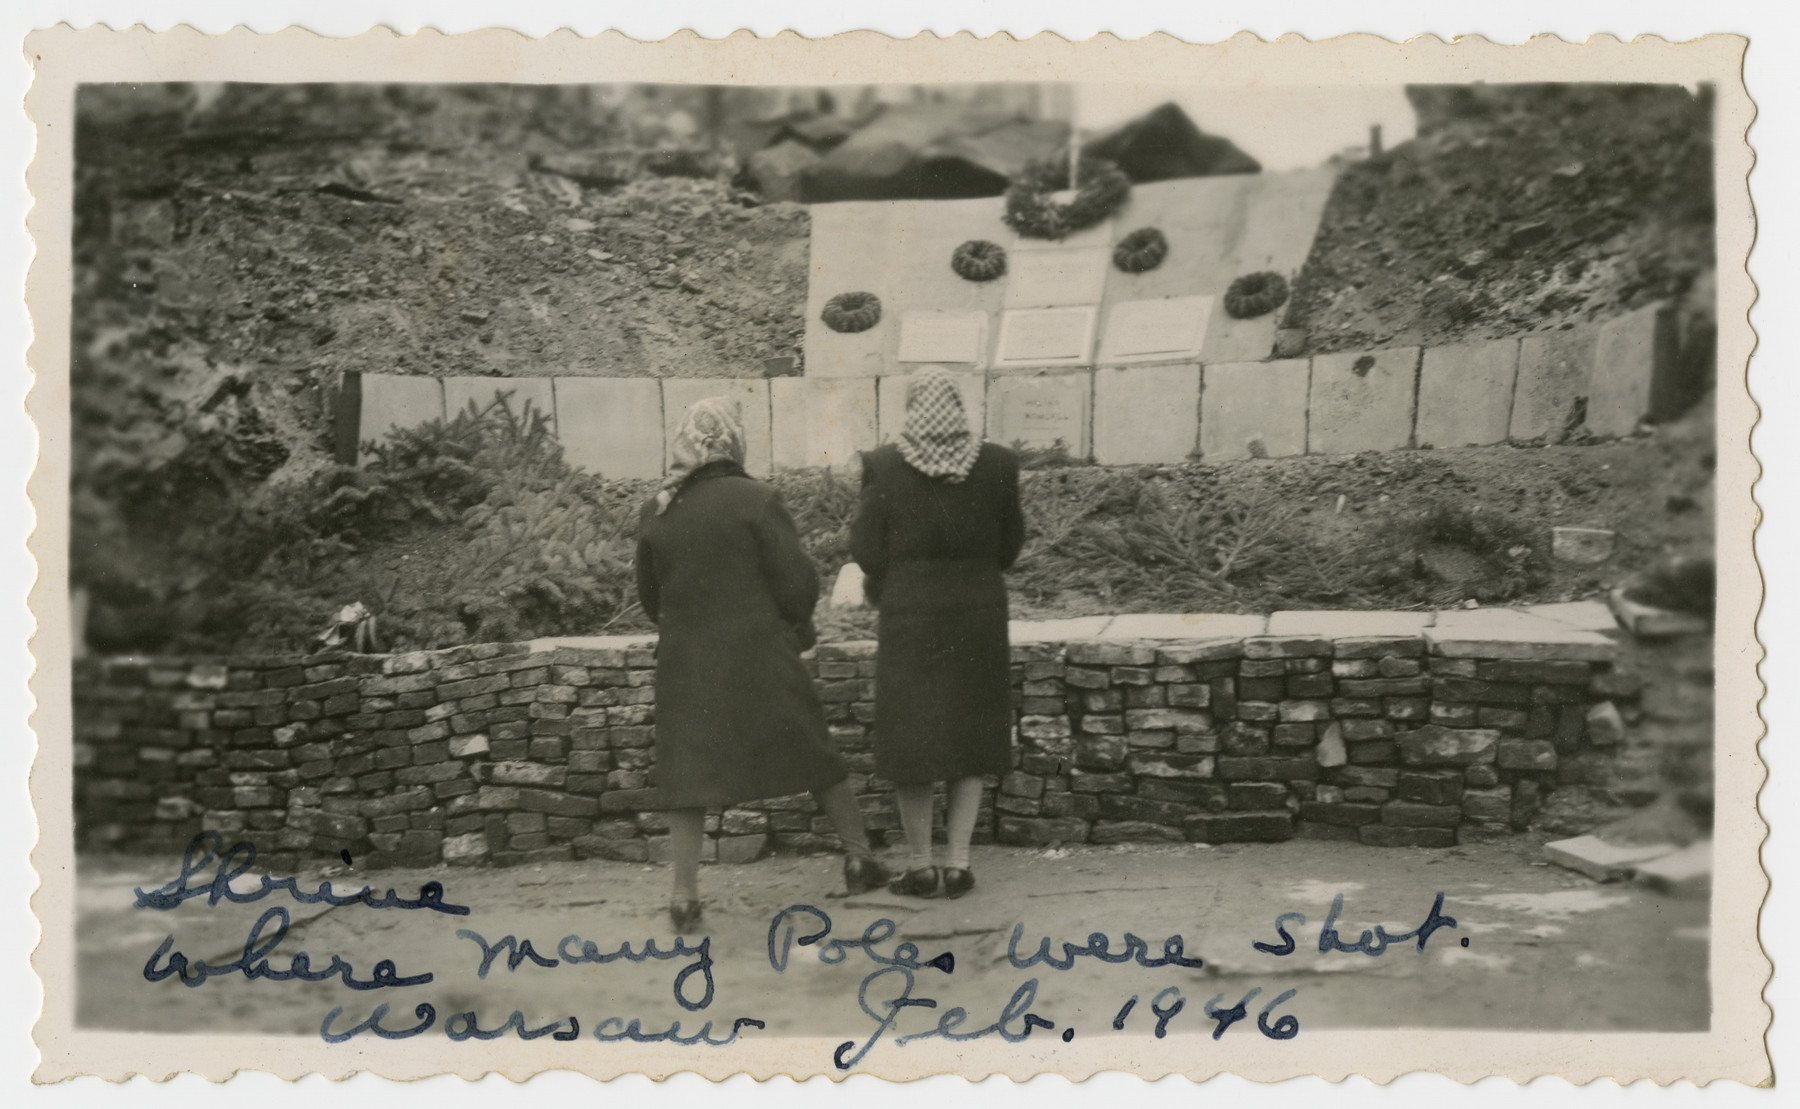 Two Polish women pay respects at a shrine where many Poles were shot.